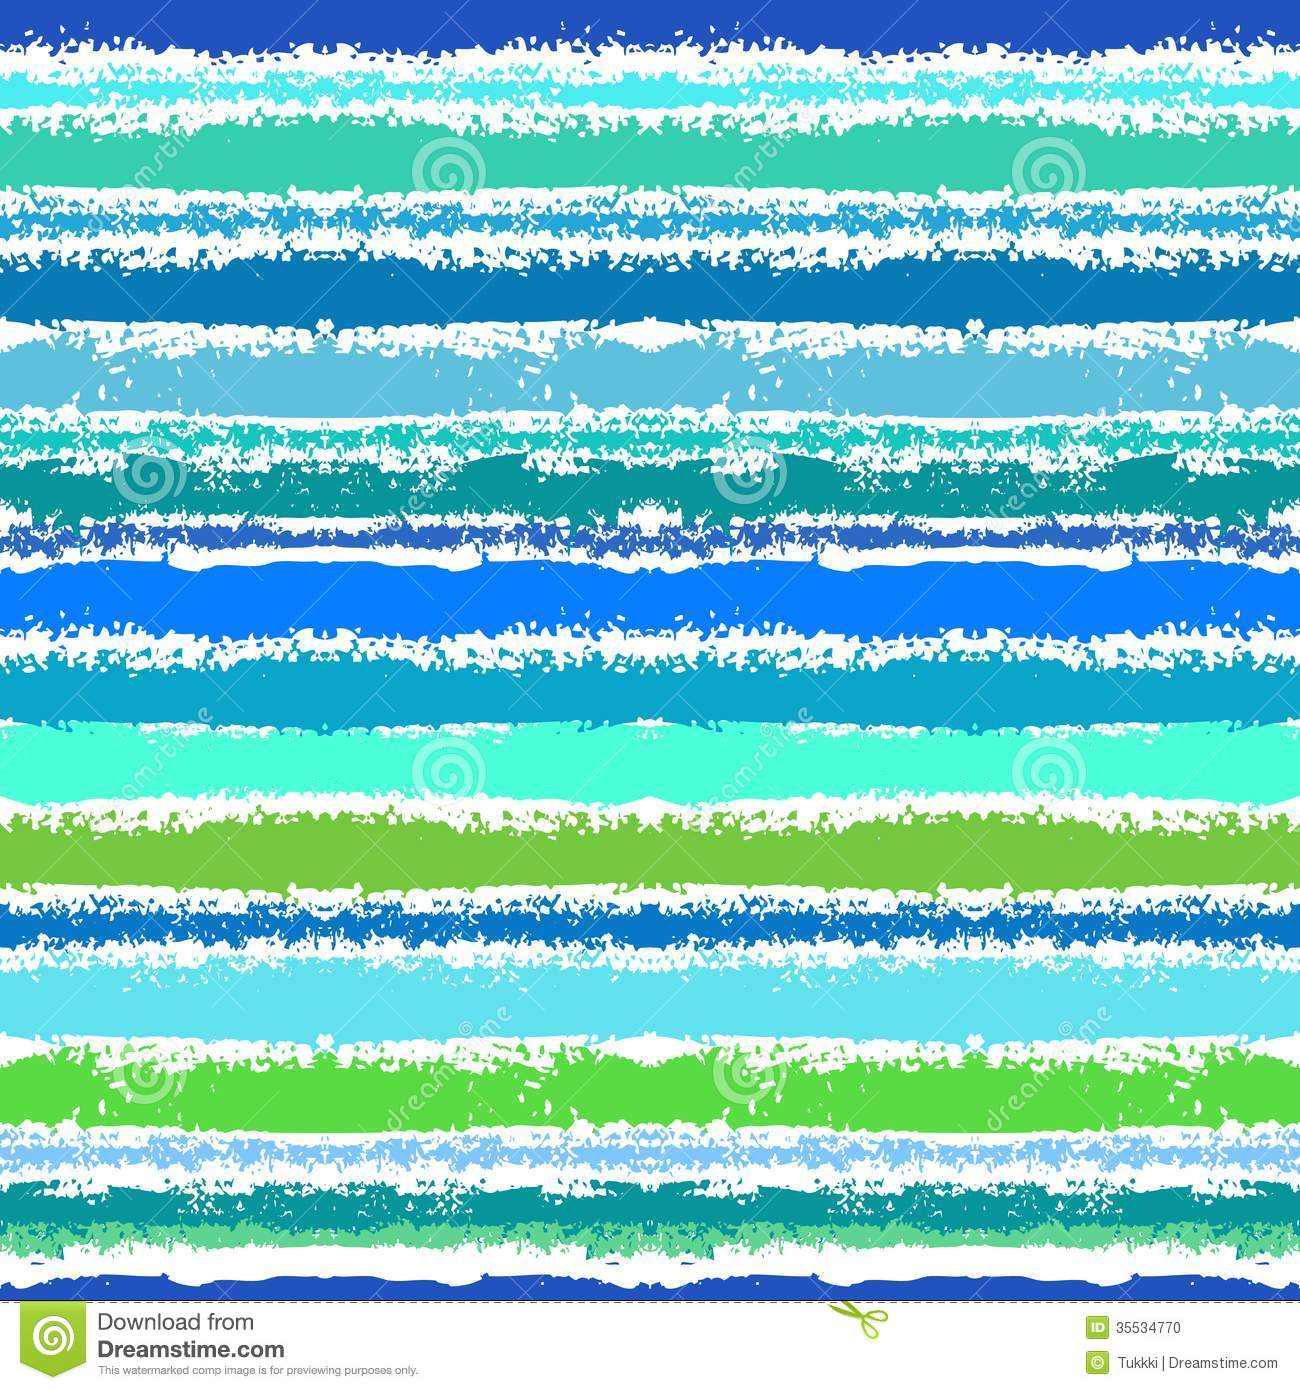 Cute Tribal Patterns Wallpaper Striped Pattern Inspired By Sea Waves Stock Photo Image